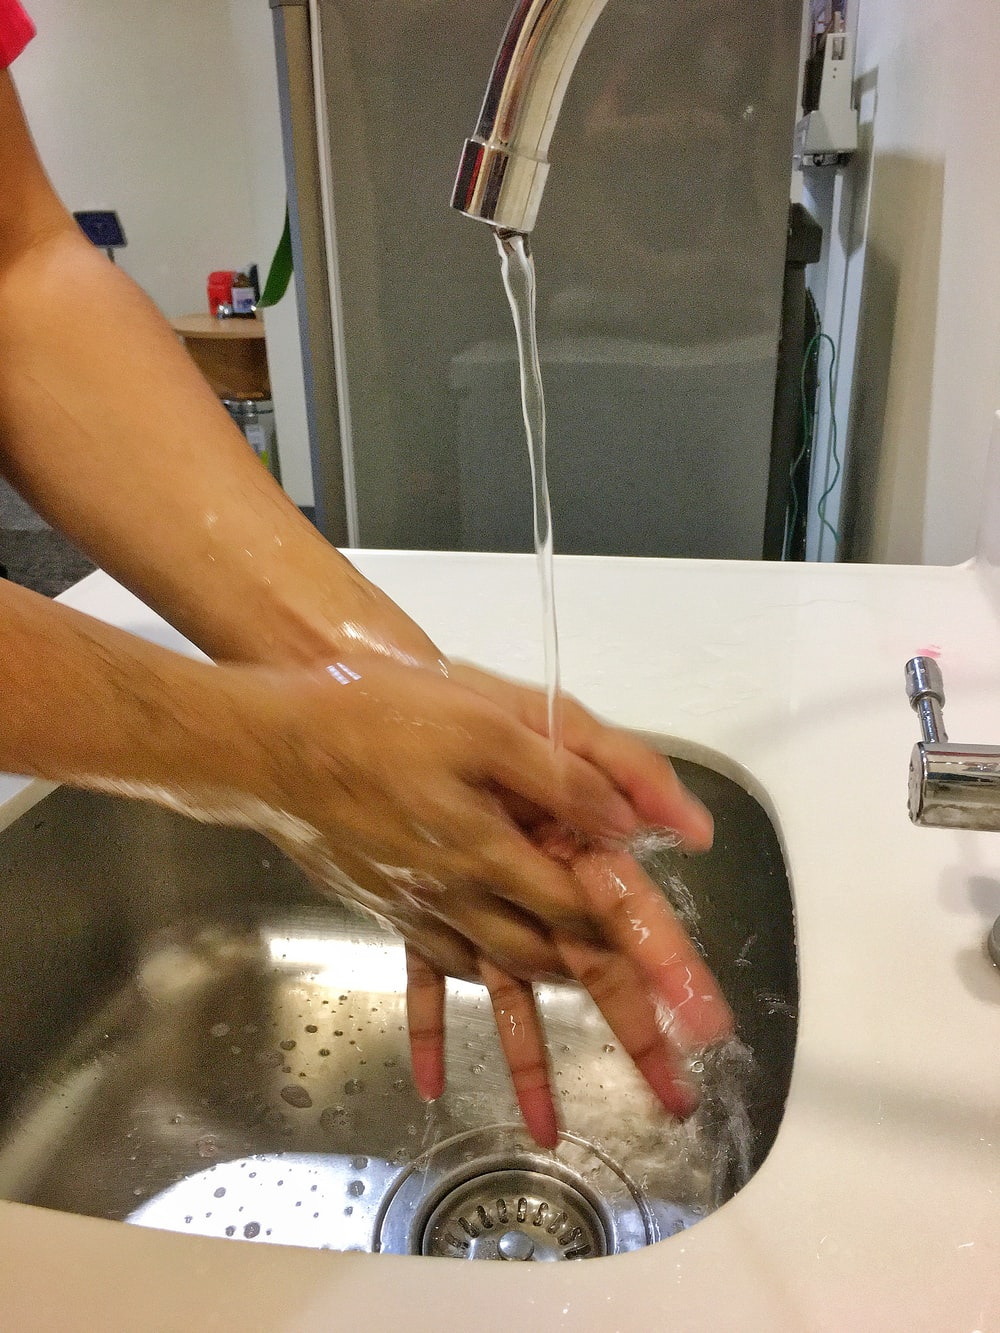 person washing hand on sink